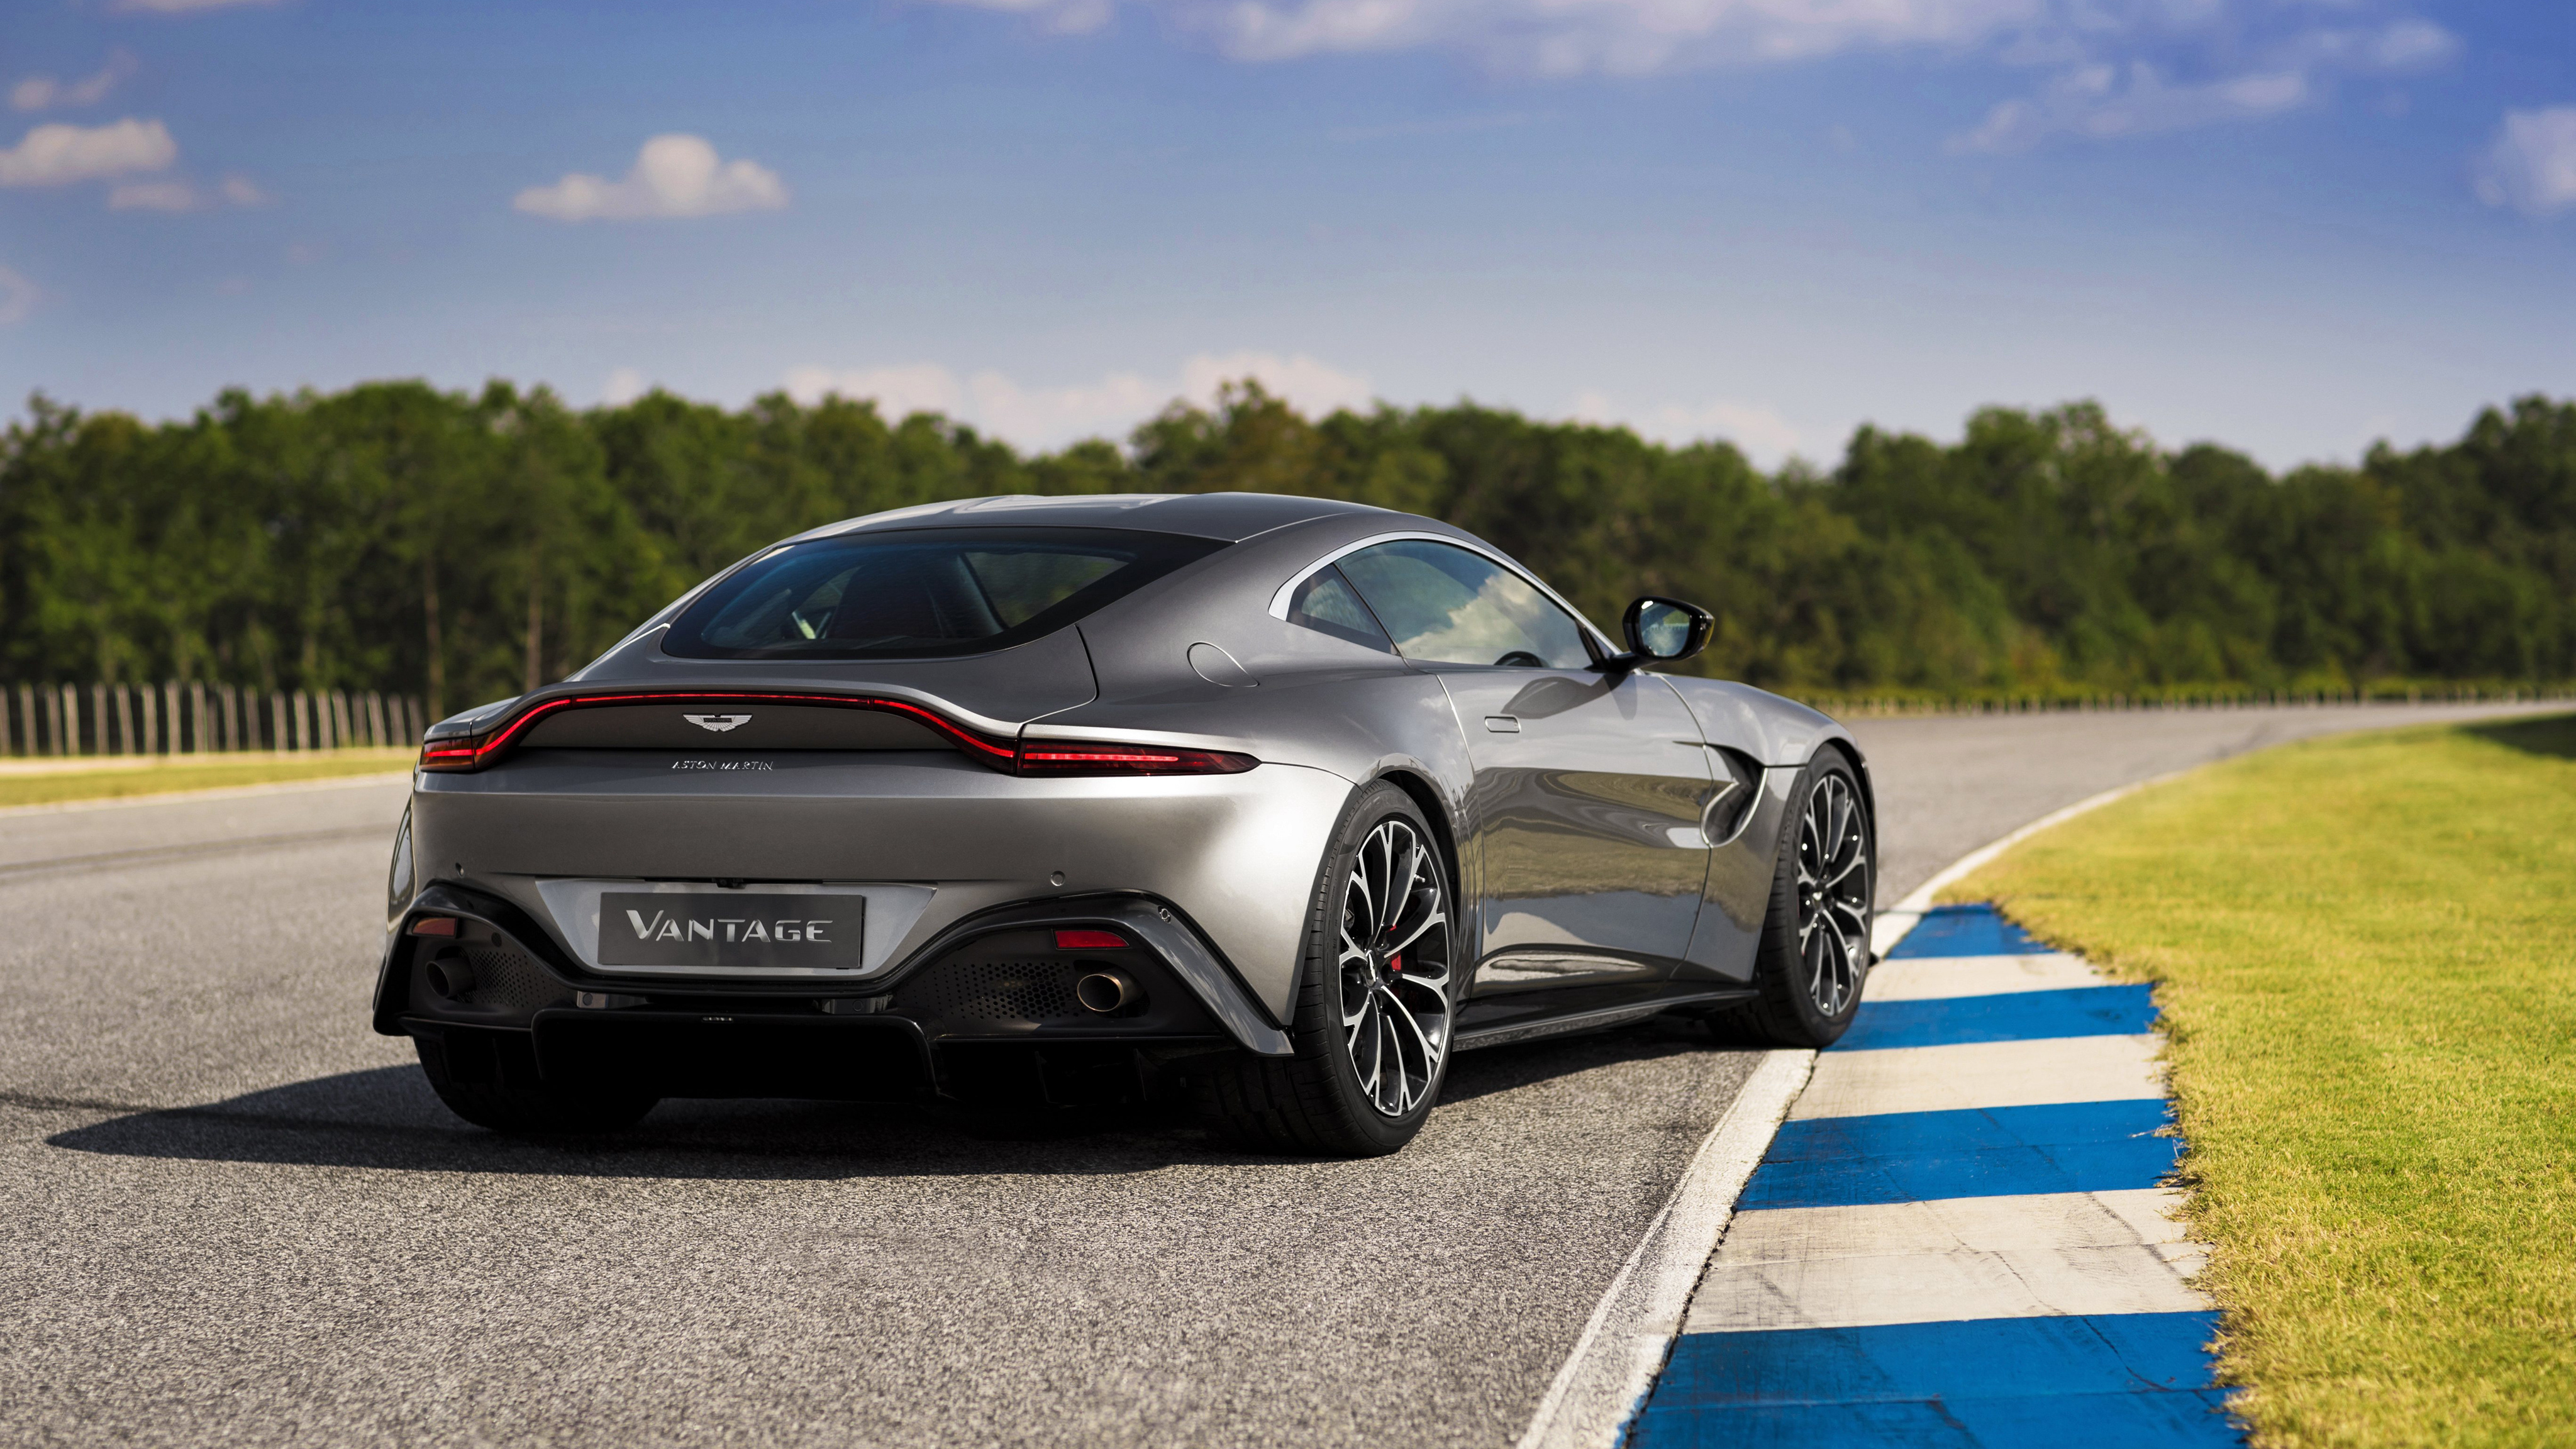 2018 Aston Martin Vantage 4k 3 Wallpaper Hd Car